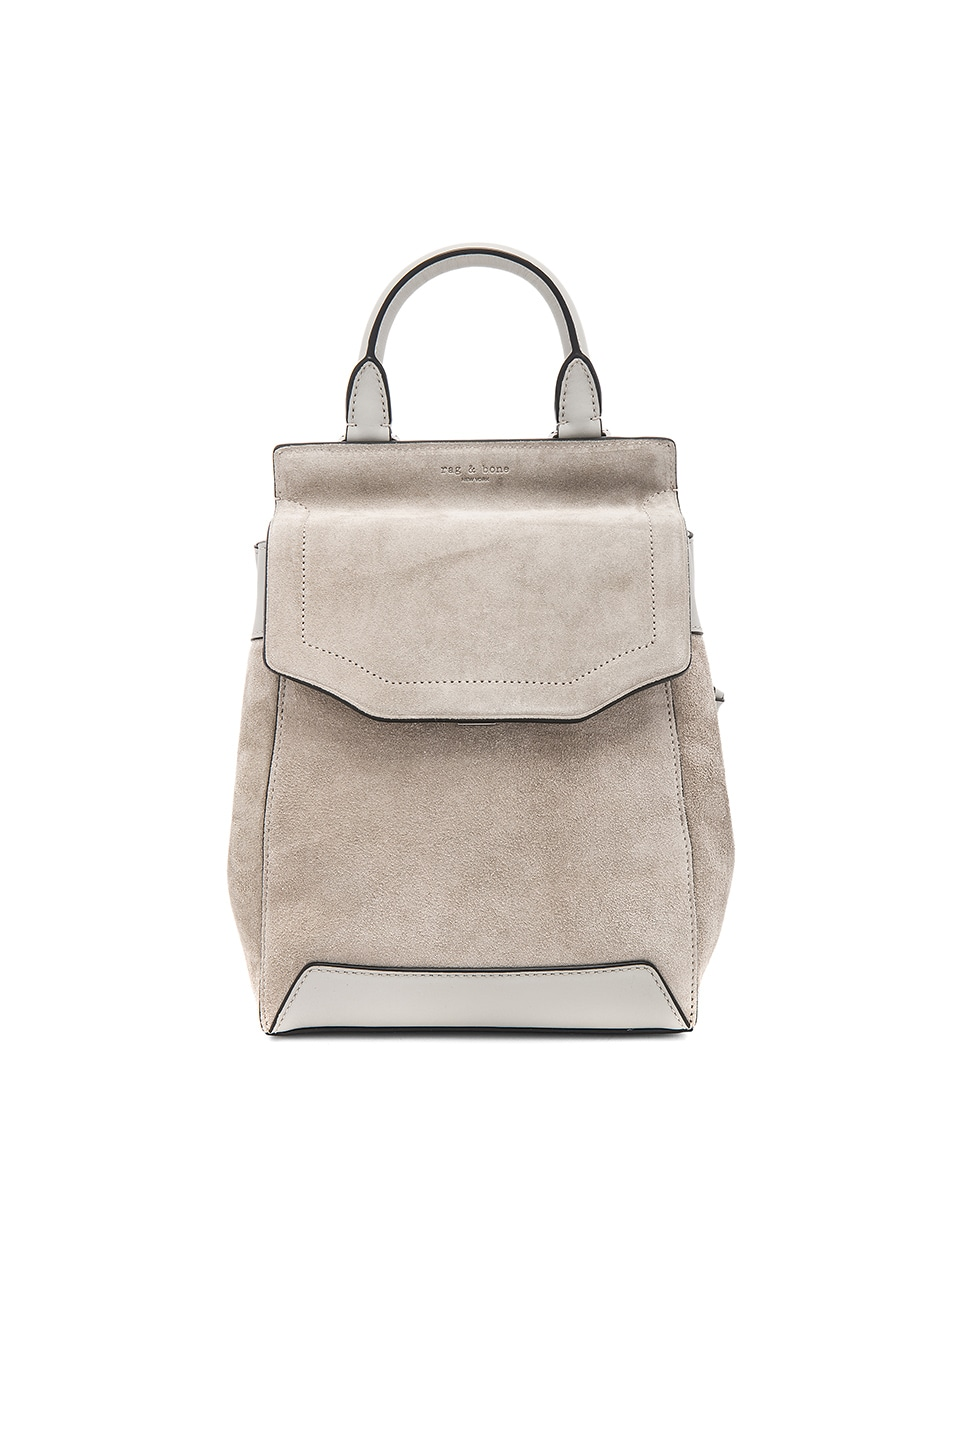 Rag & Bone Small Pilot Backpack in Cemento Suede